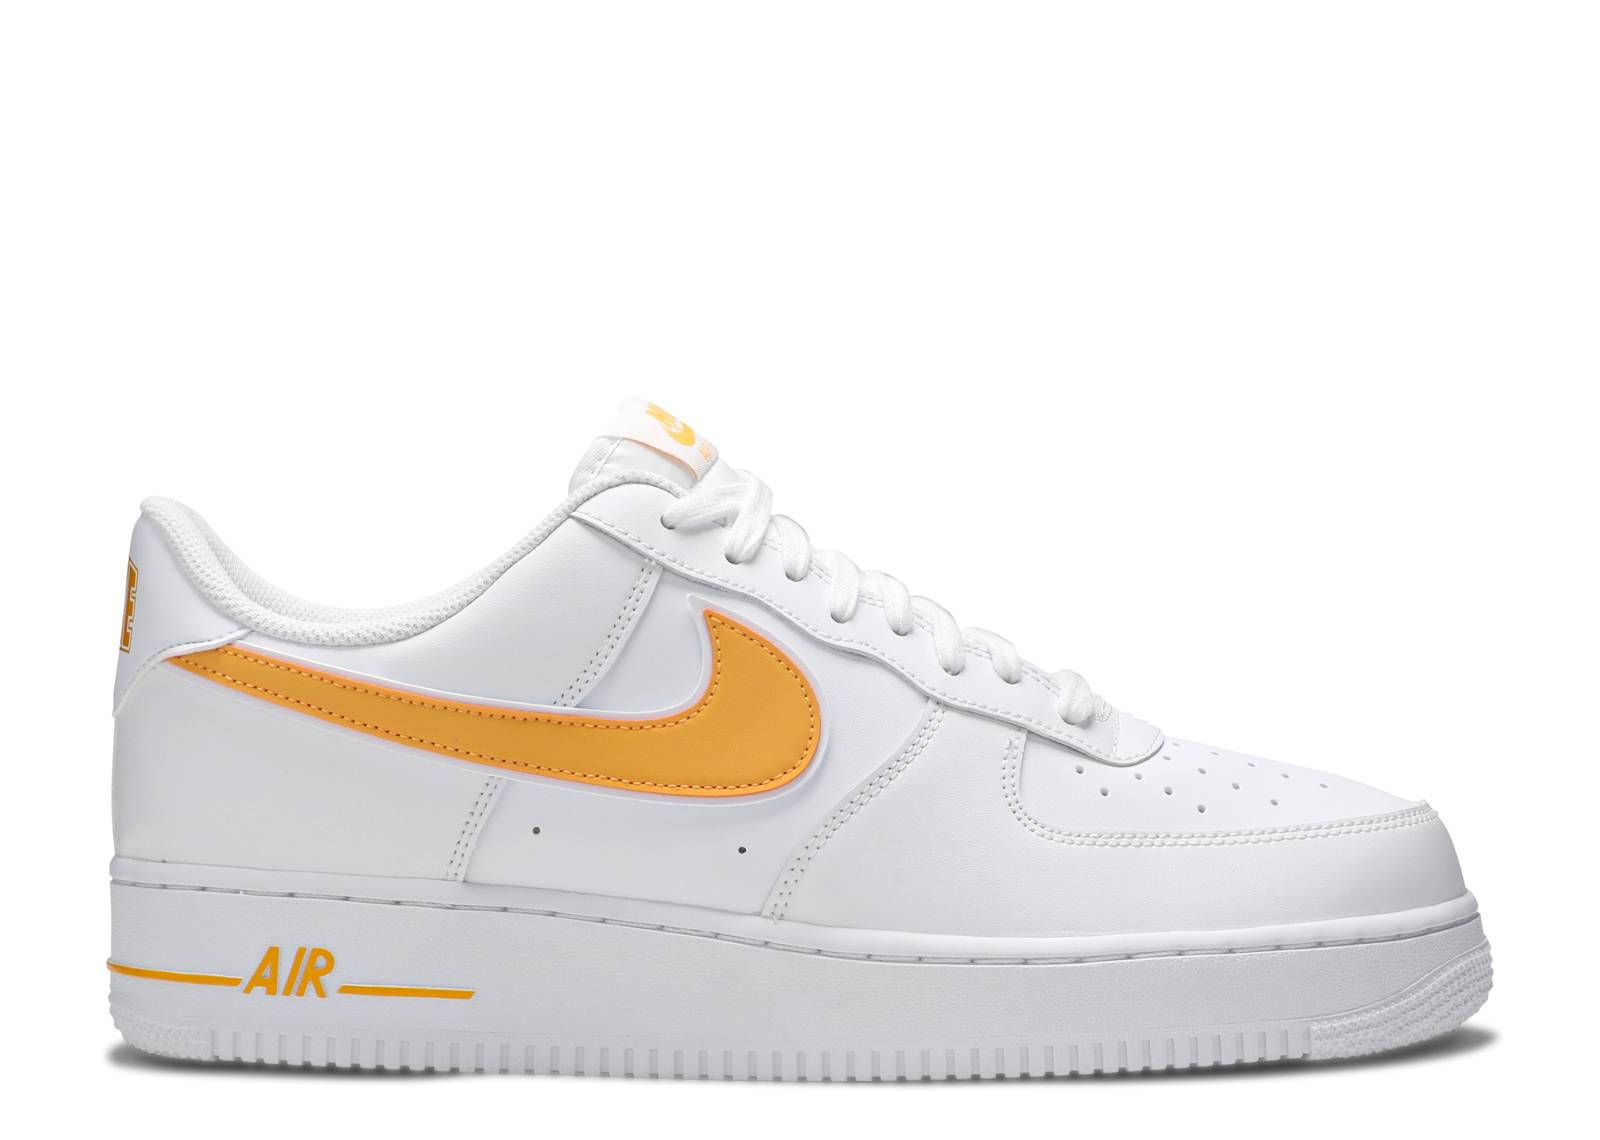 Air Force 1 Low '07